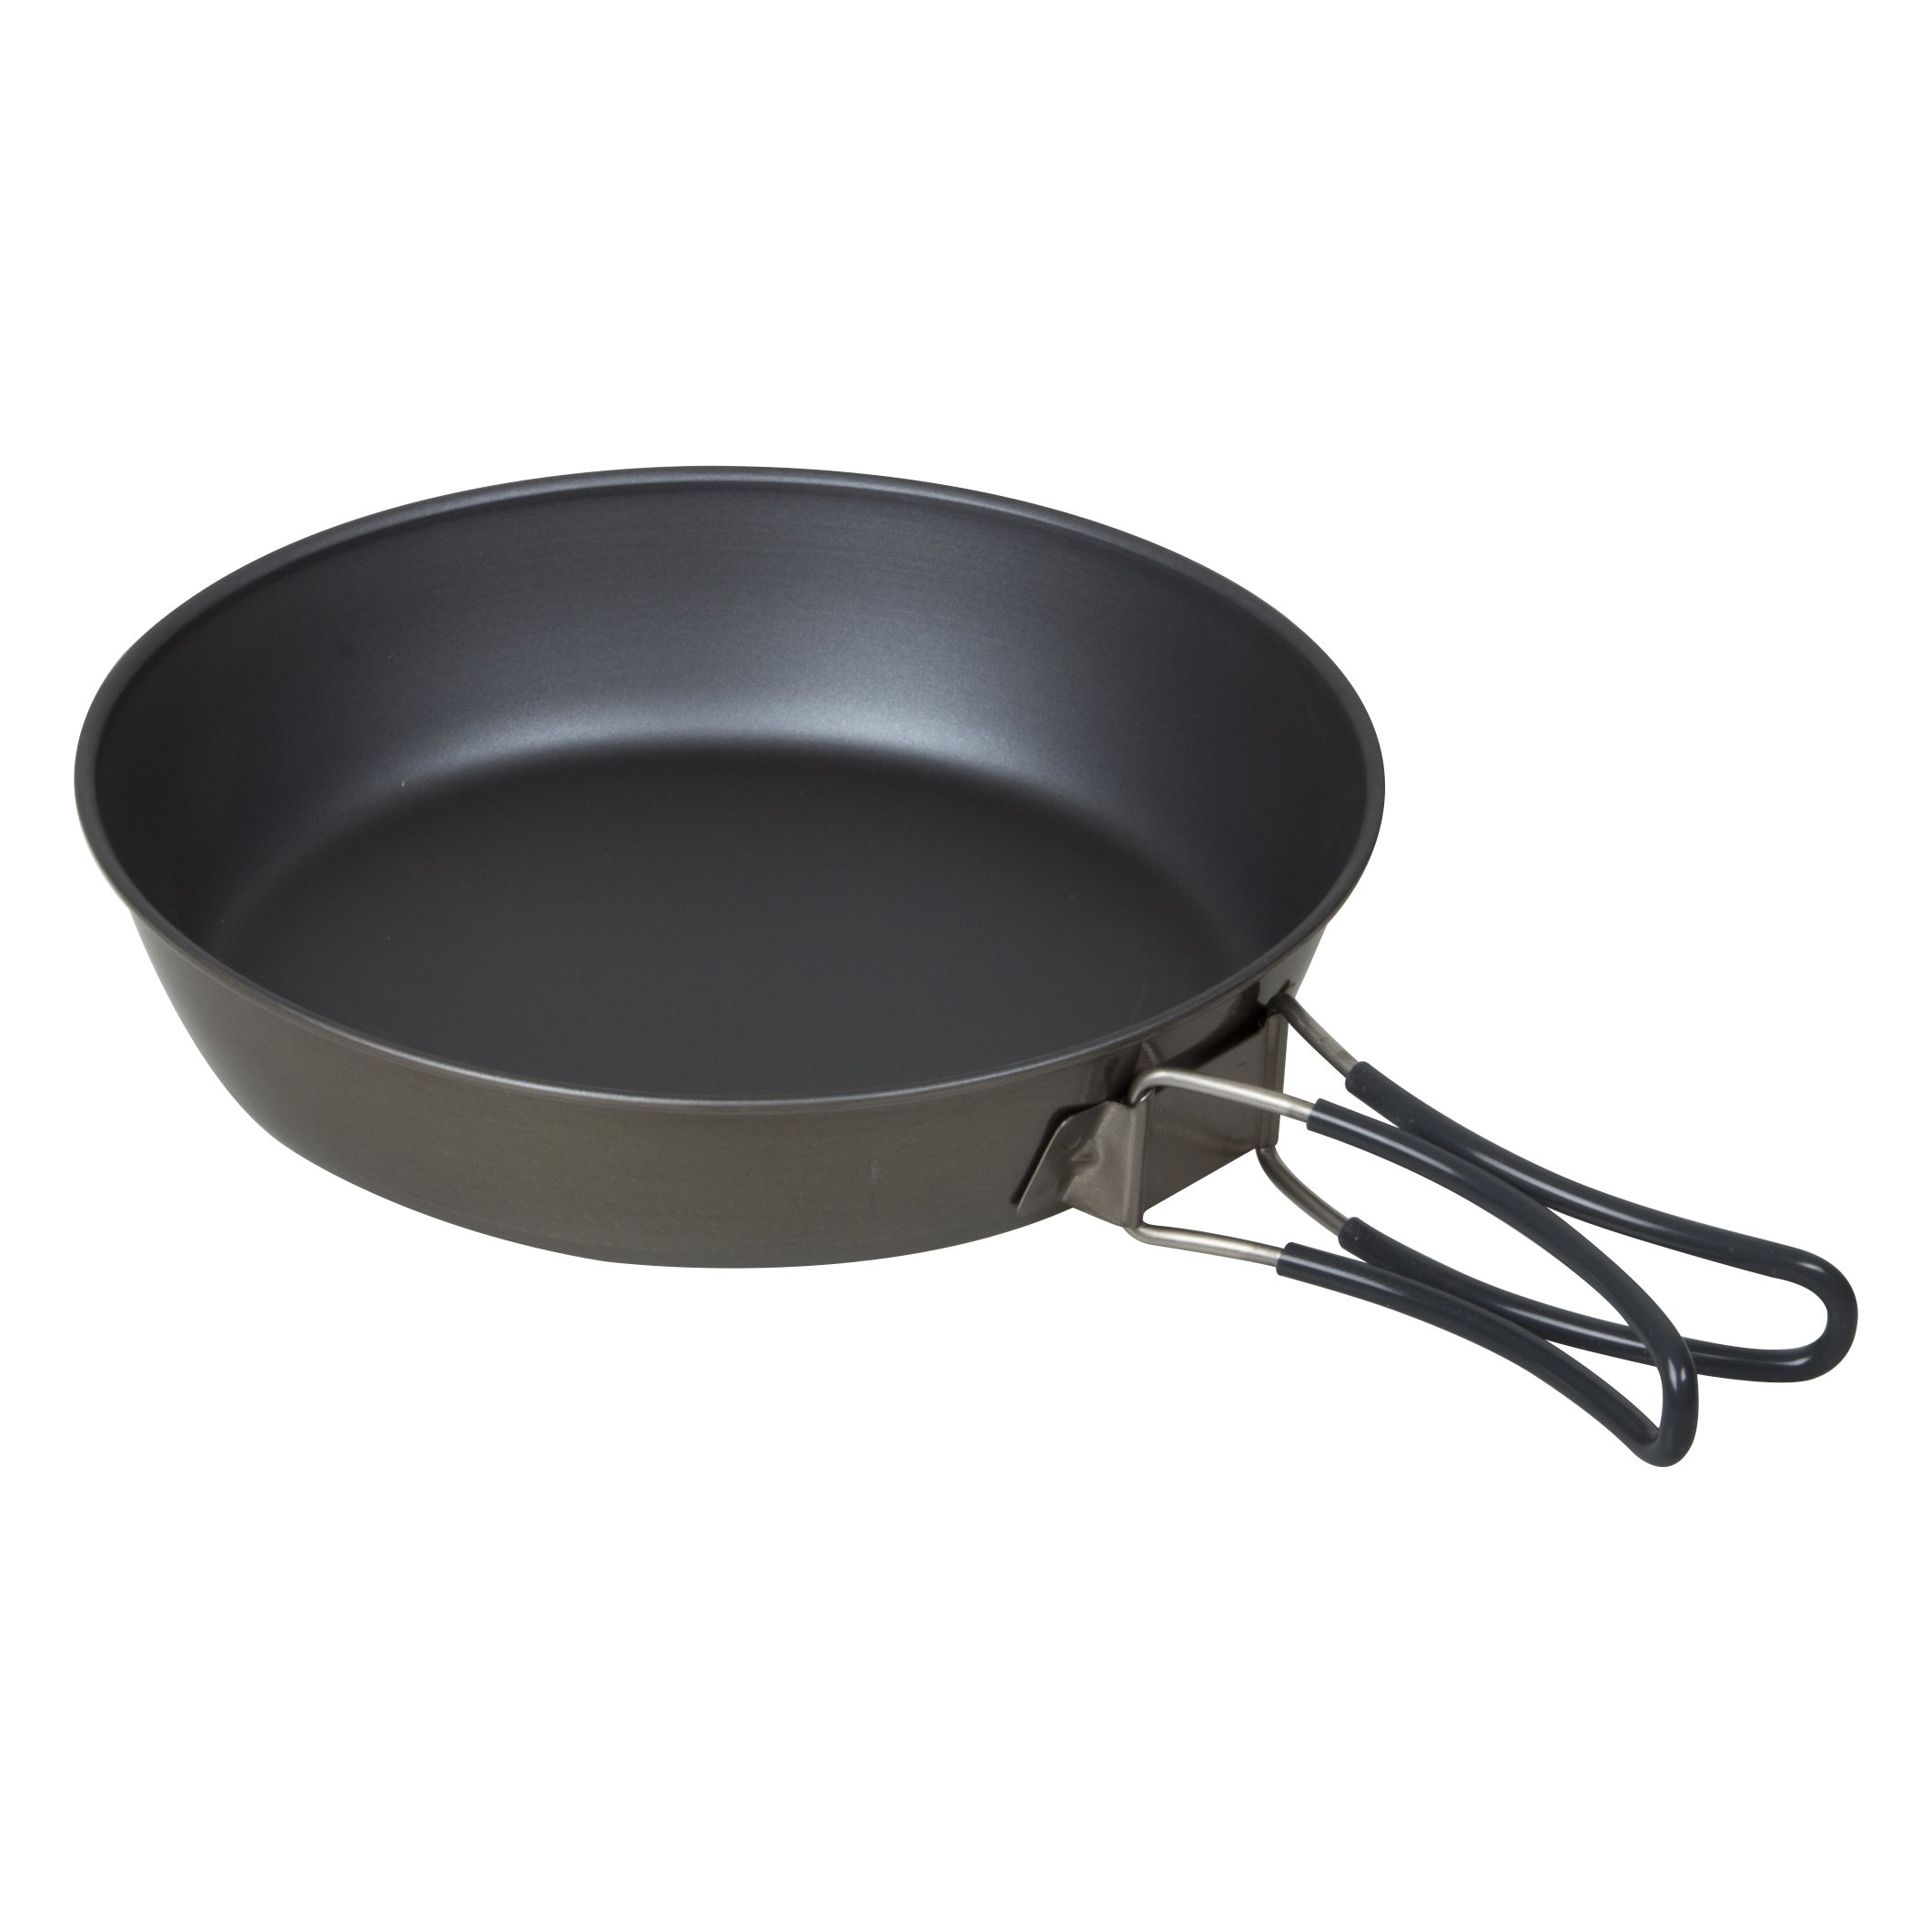 EVERNEW Titanium NS Frypan, 7.28'' by EVERNEW